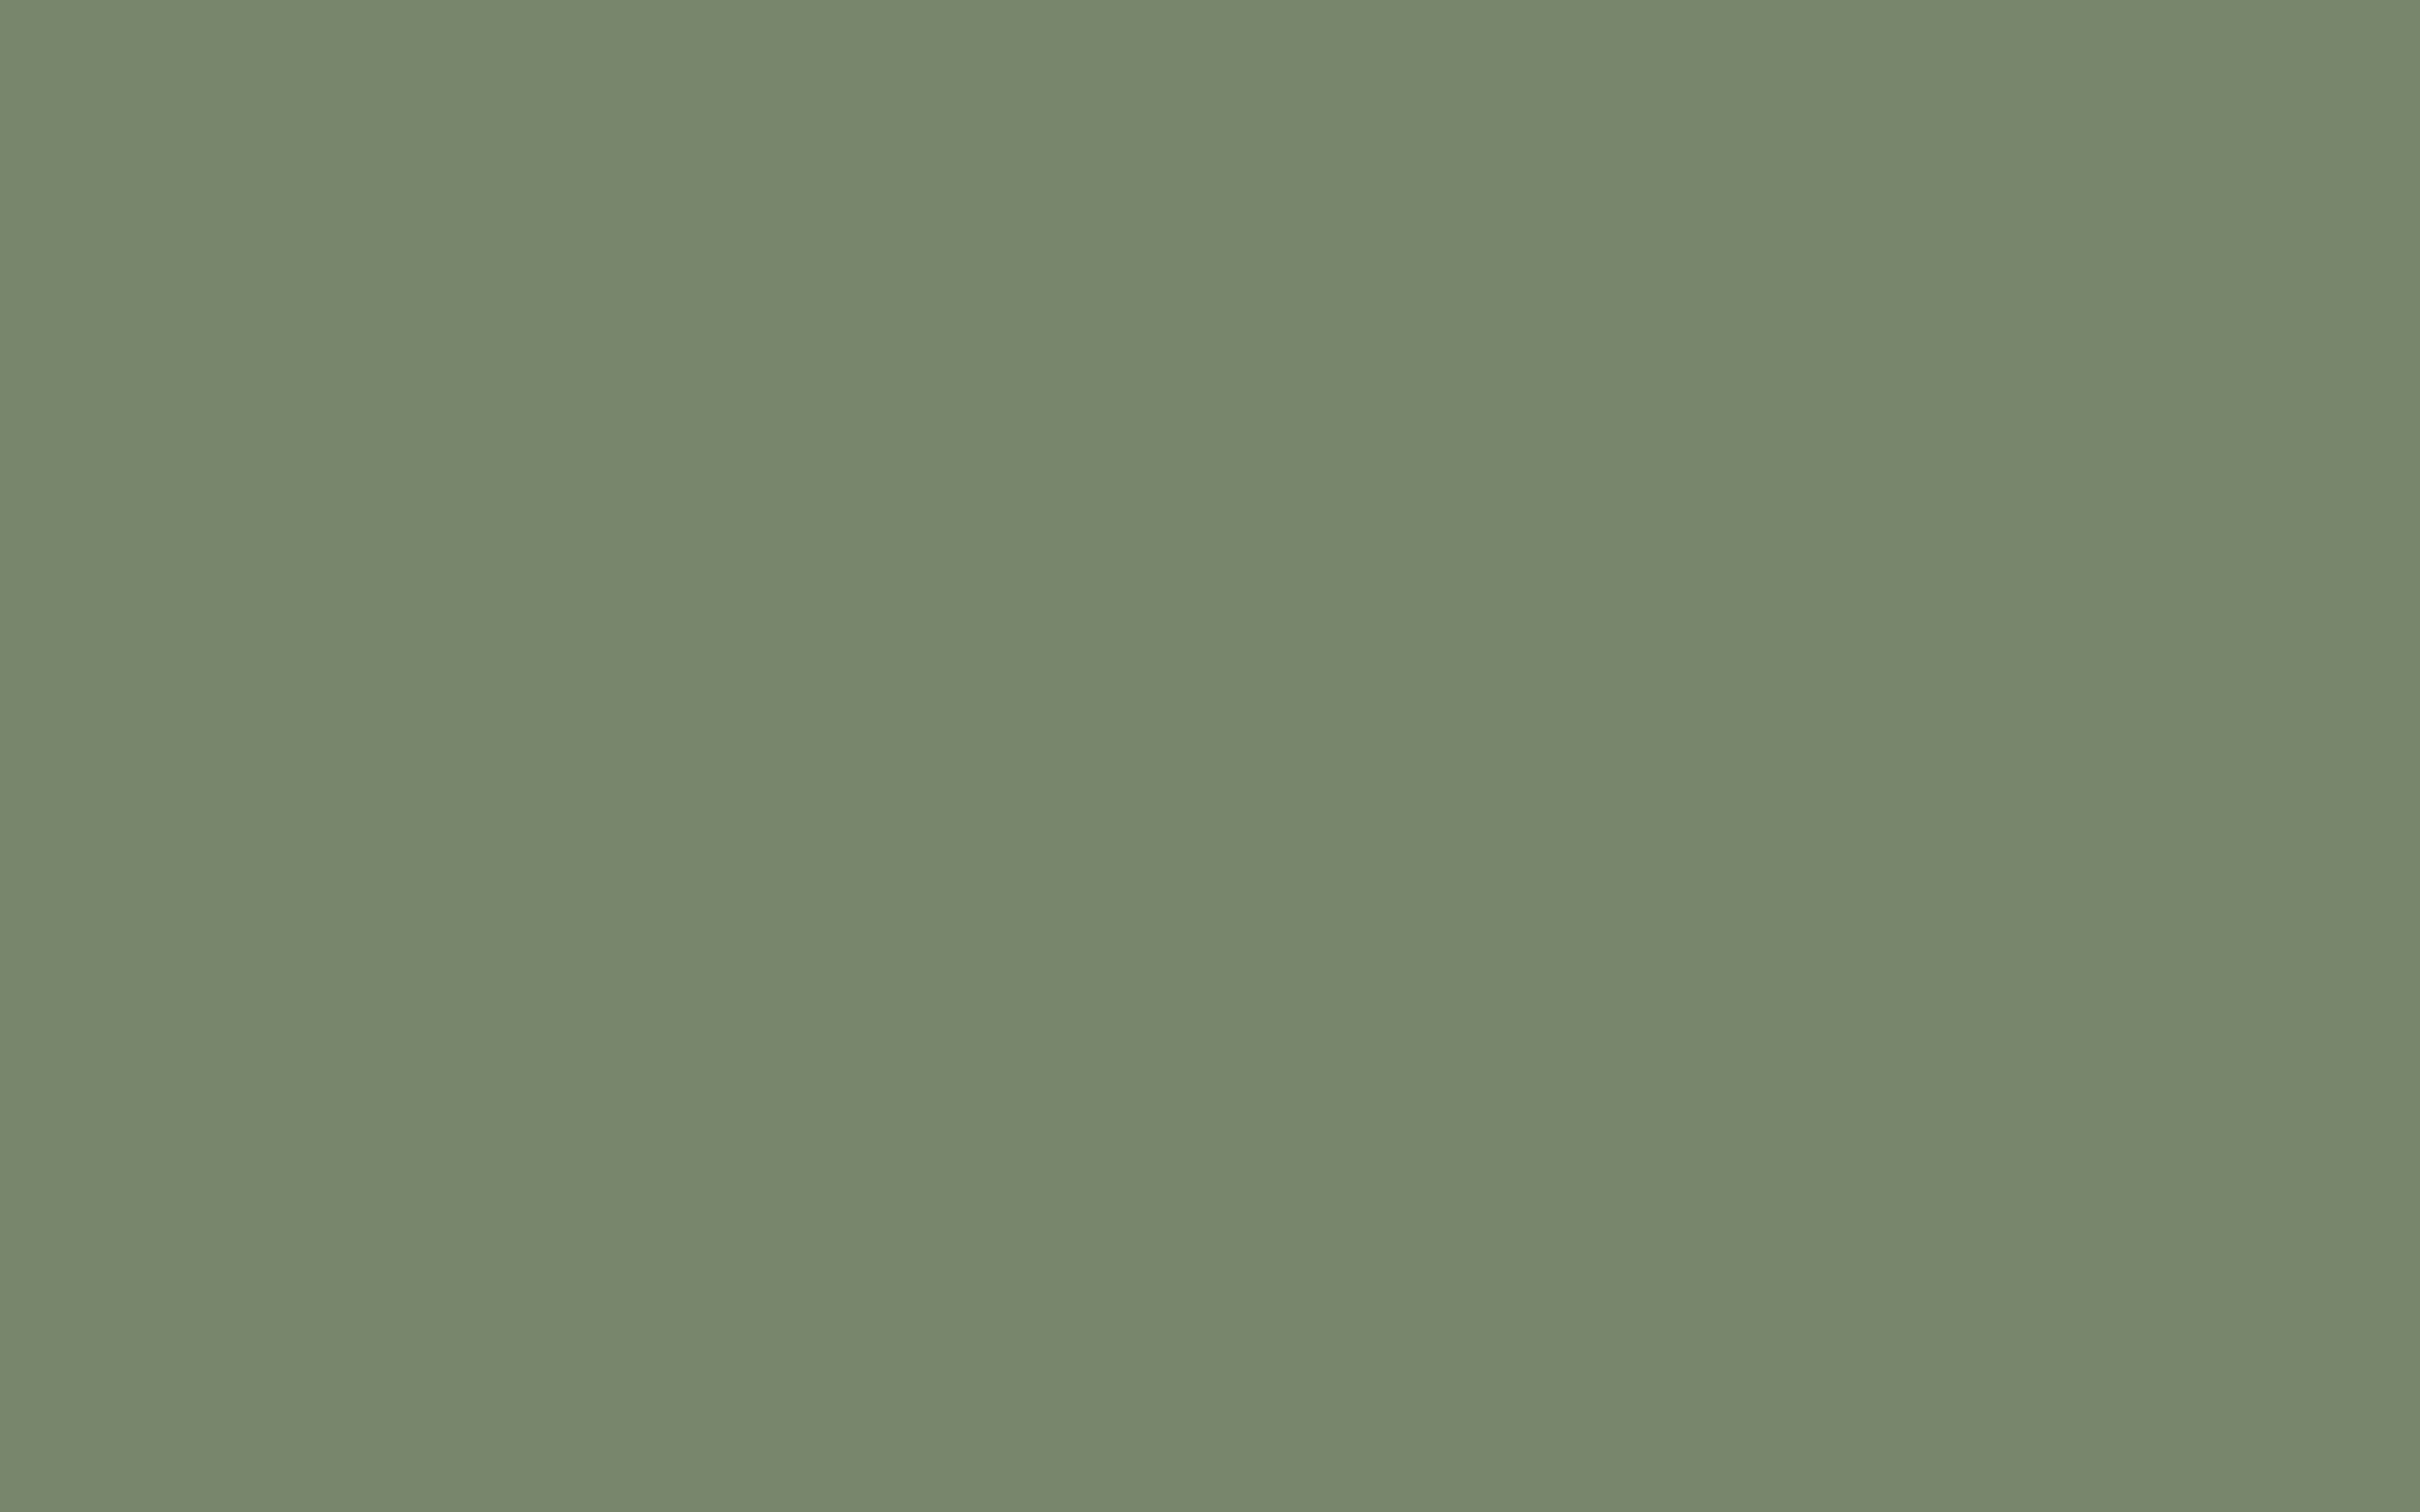 2560x1600 Camouflage Green Solid Color Background